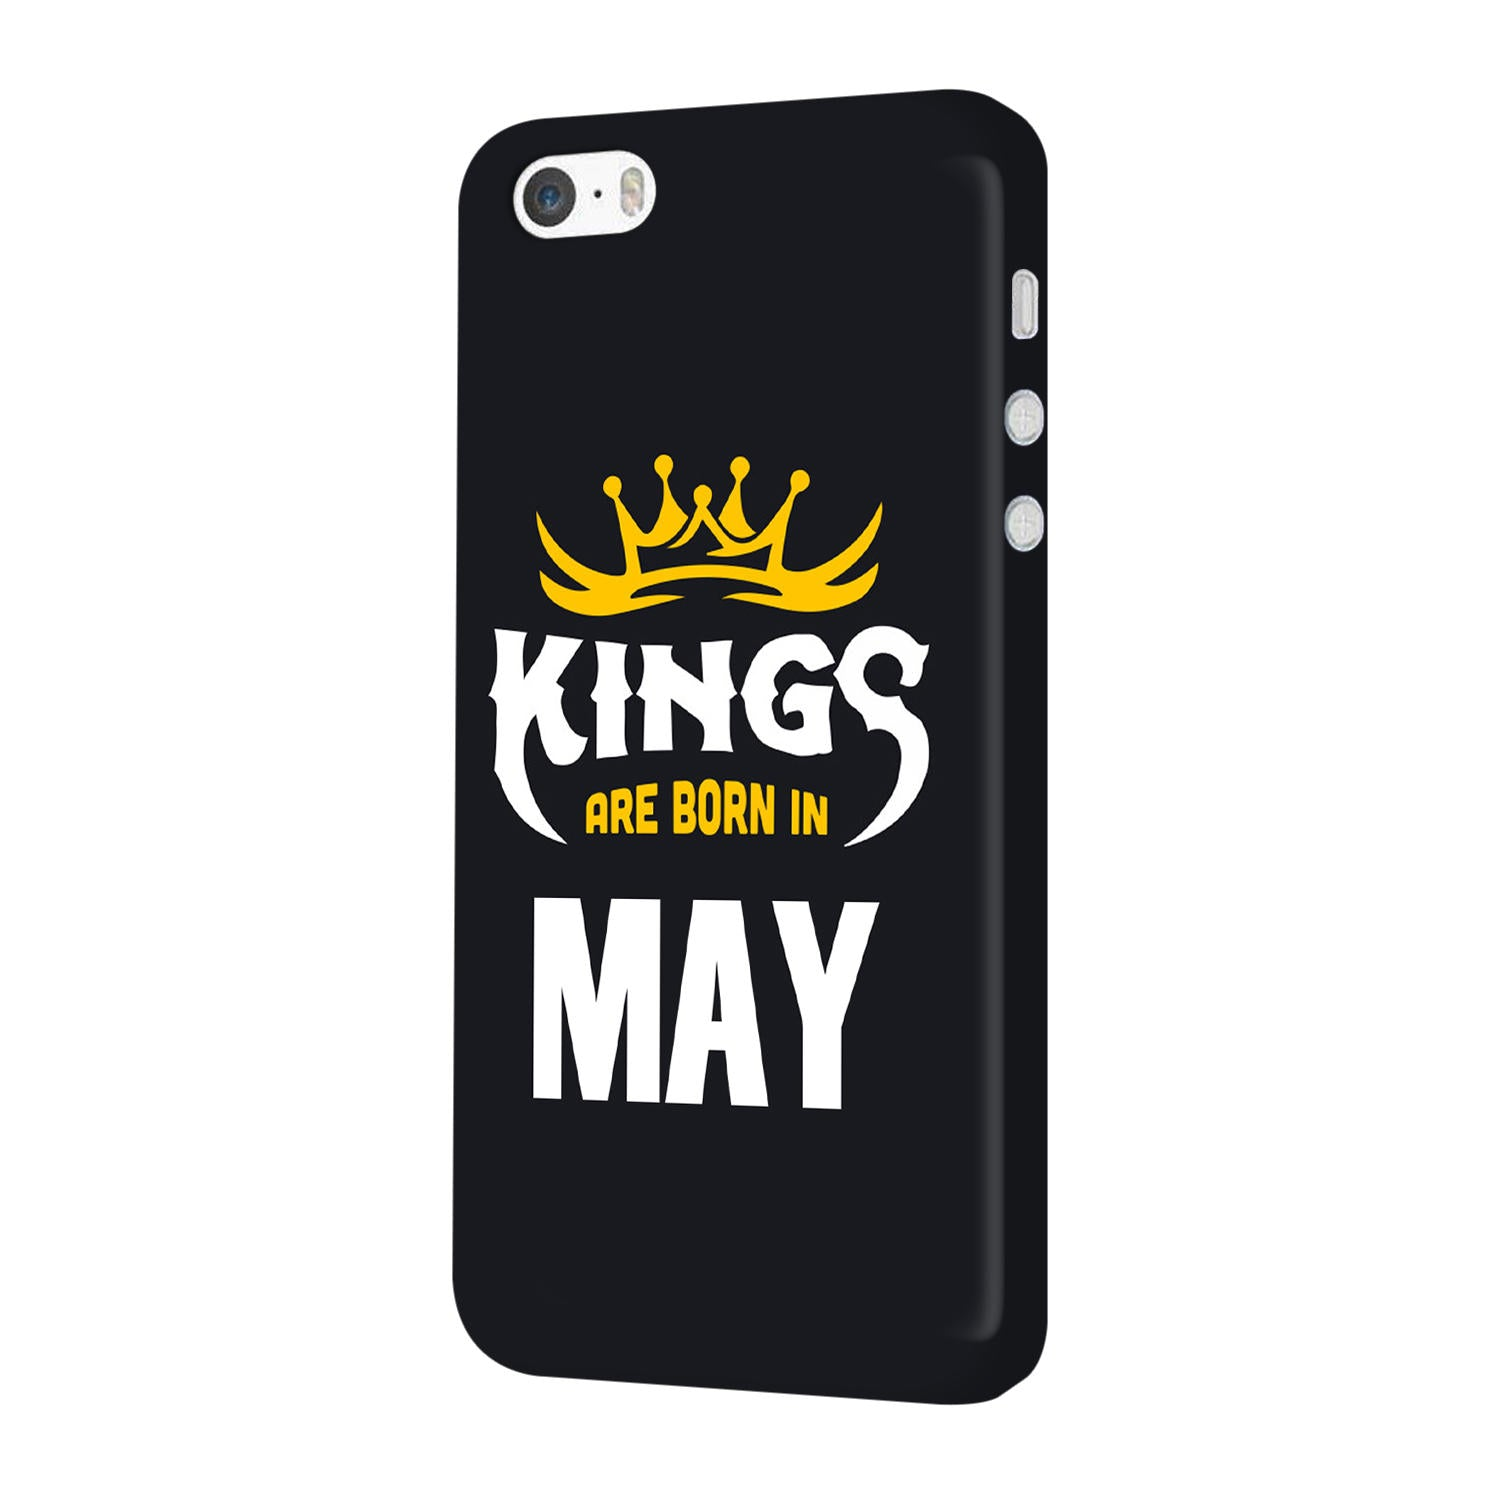 Kings May - Narcissist iPhone 5 Mobile Cover Case - MADANYU